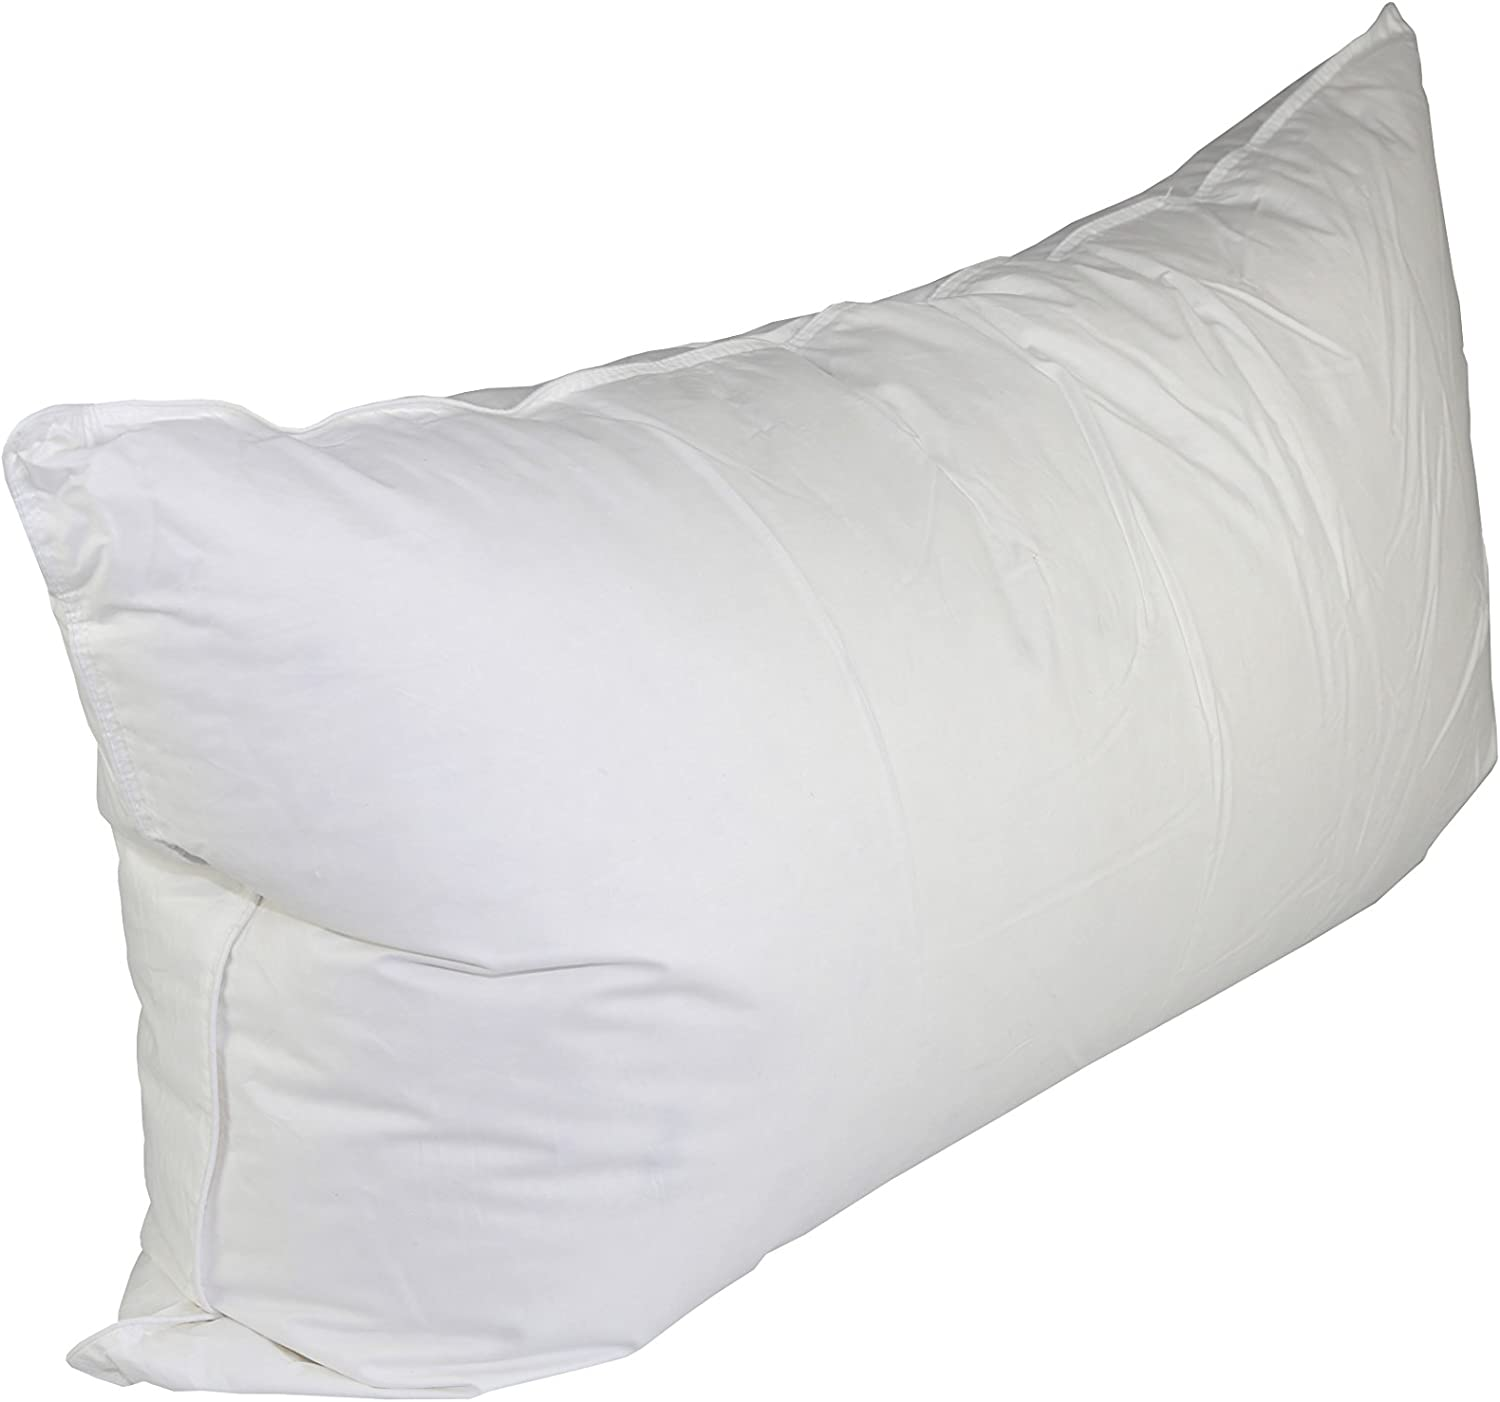 Amazon Com White Duck Down Feather Pillow Pillows With Soft Medium Support Home Kitchen